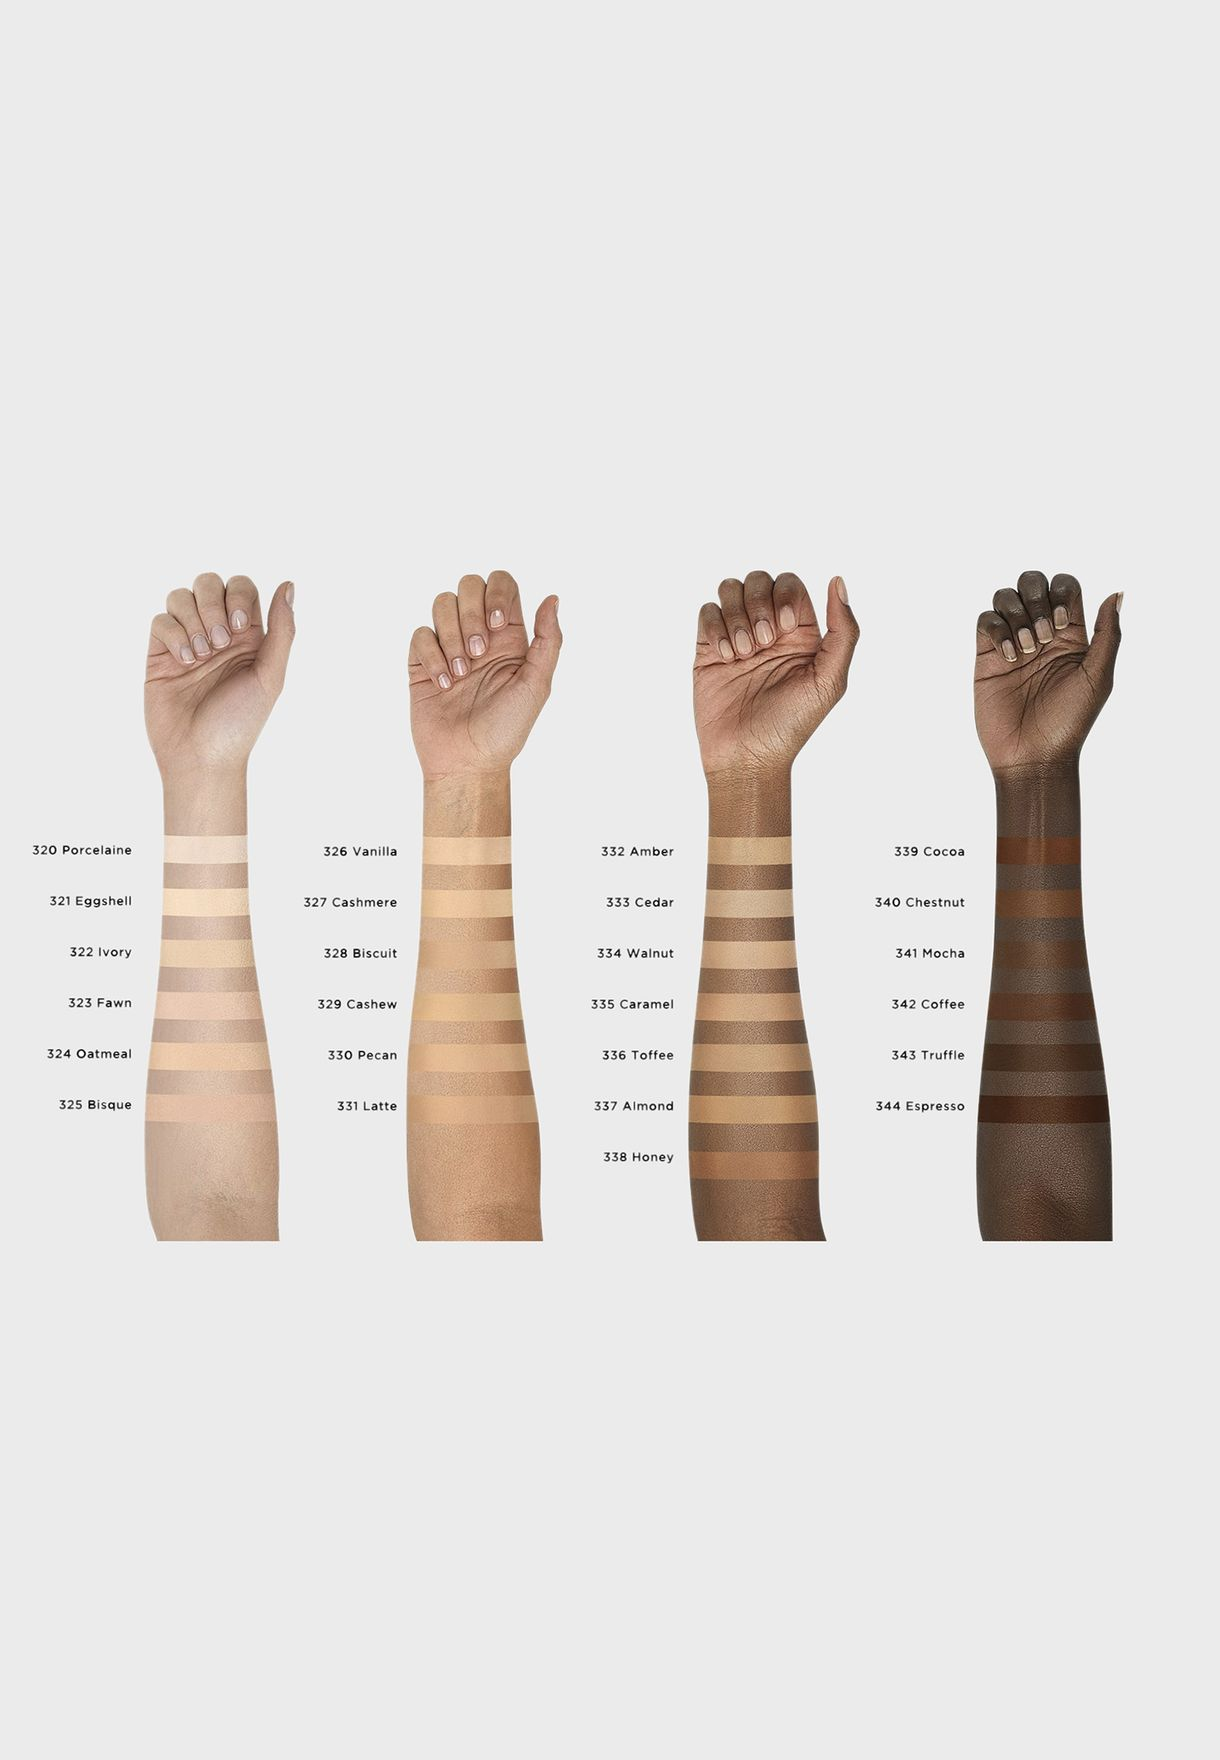 Infallible Full Coverage Concealer 329 Cashew